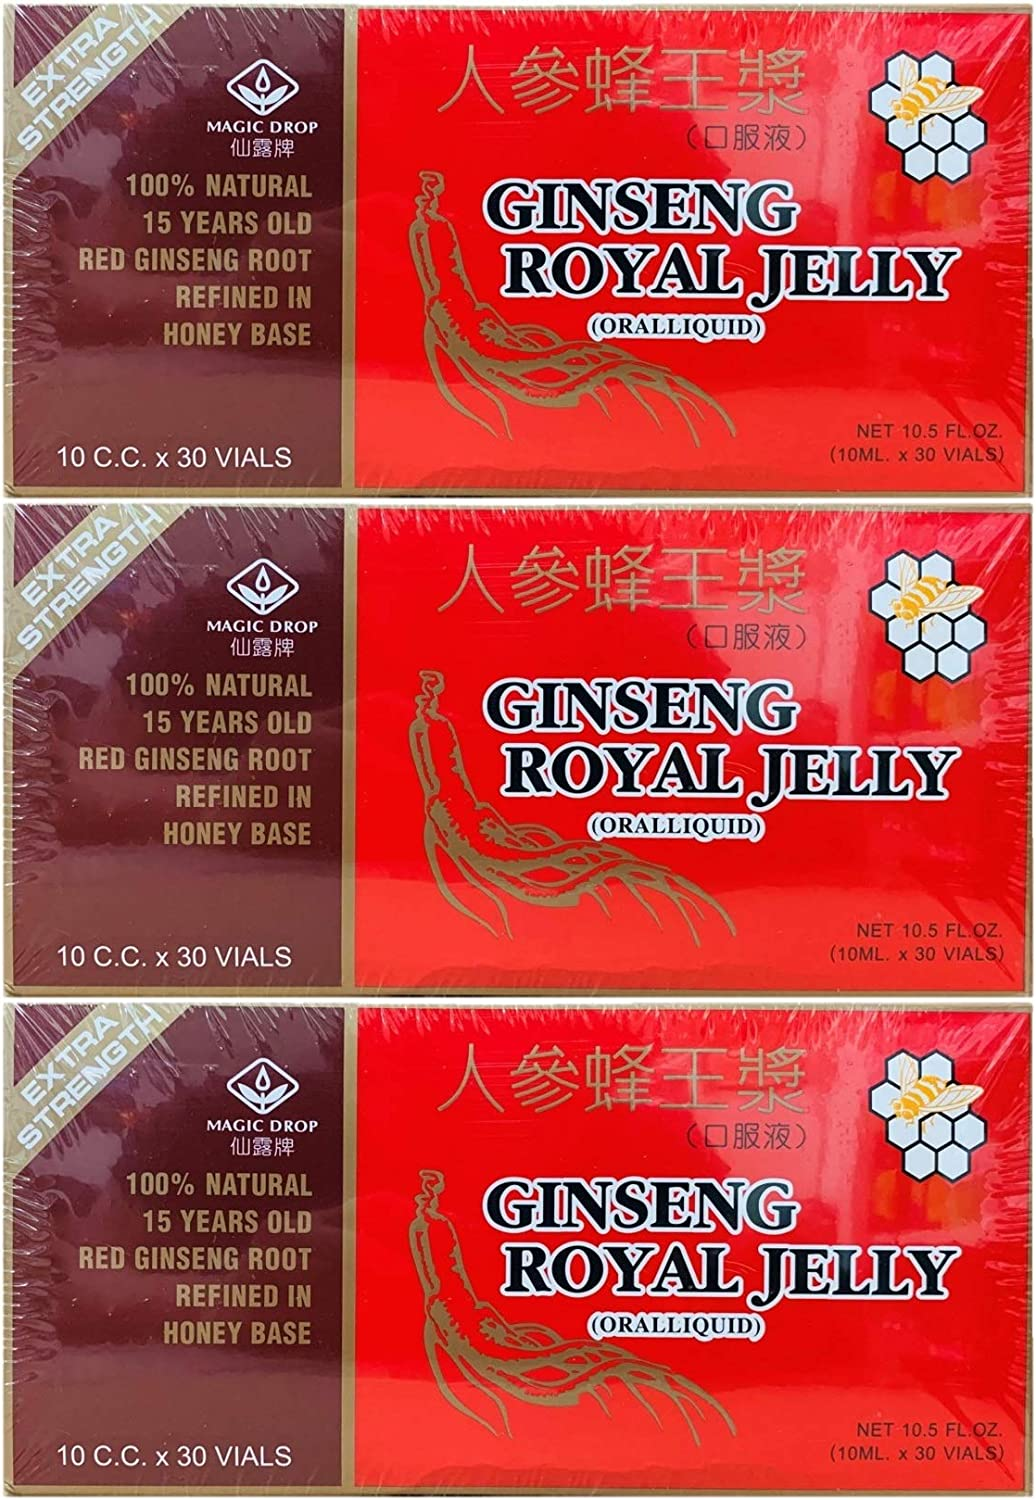 3 Boxes Magic Drop Ginseng Royal Ranking TOP16 Opening large release sale 90 Vials 30 Vial Jelly Total